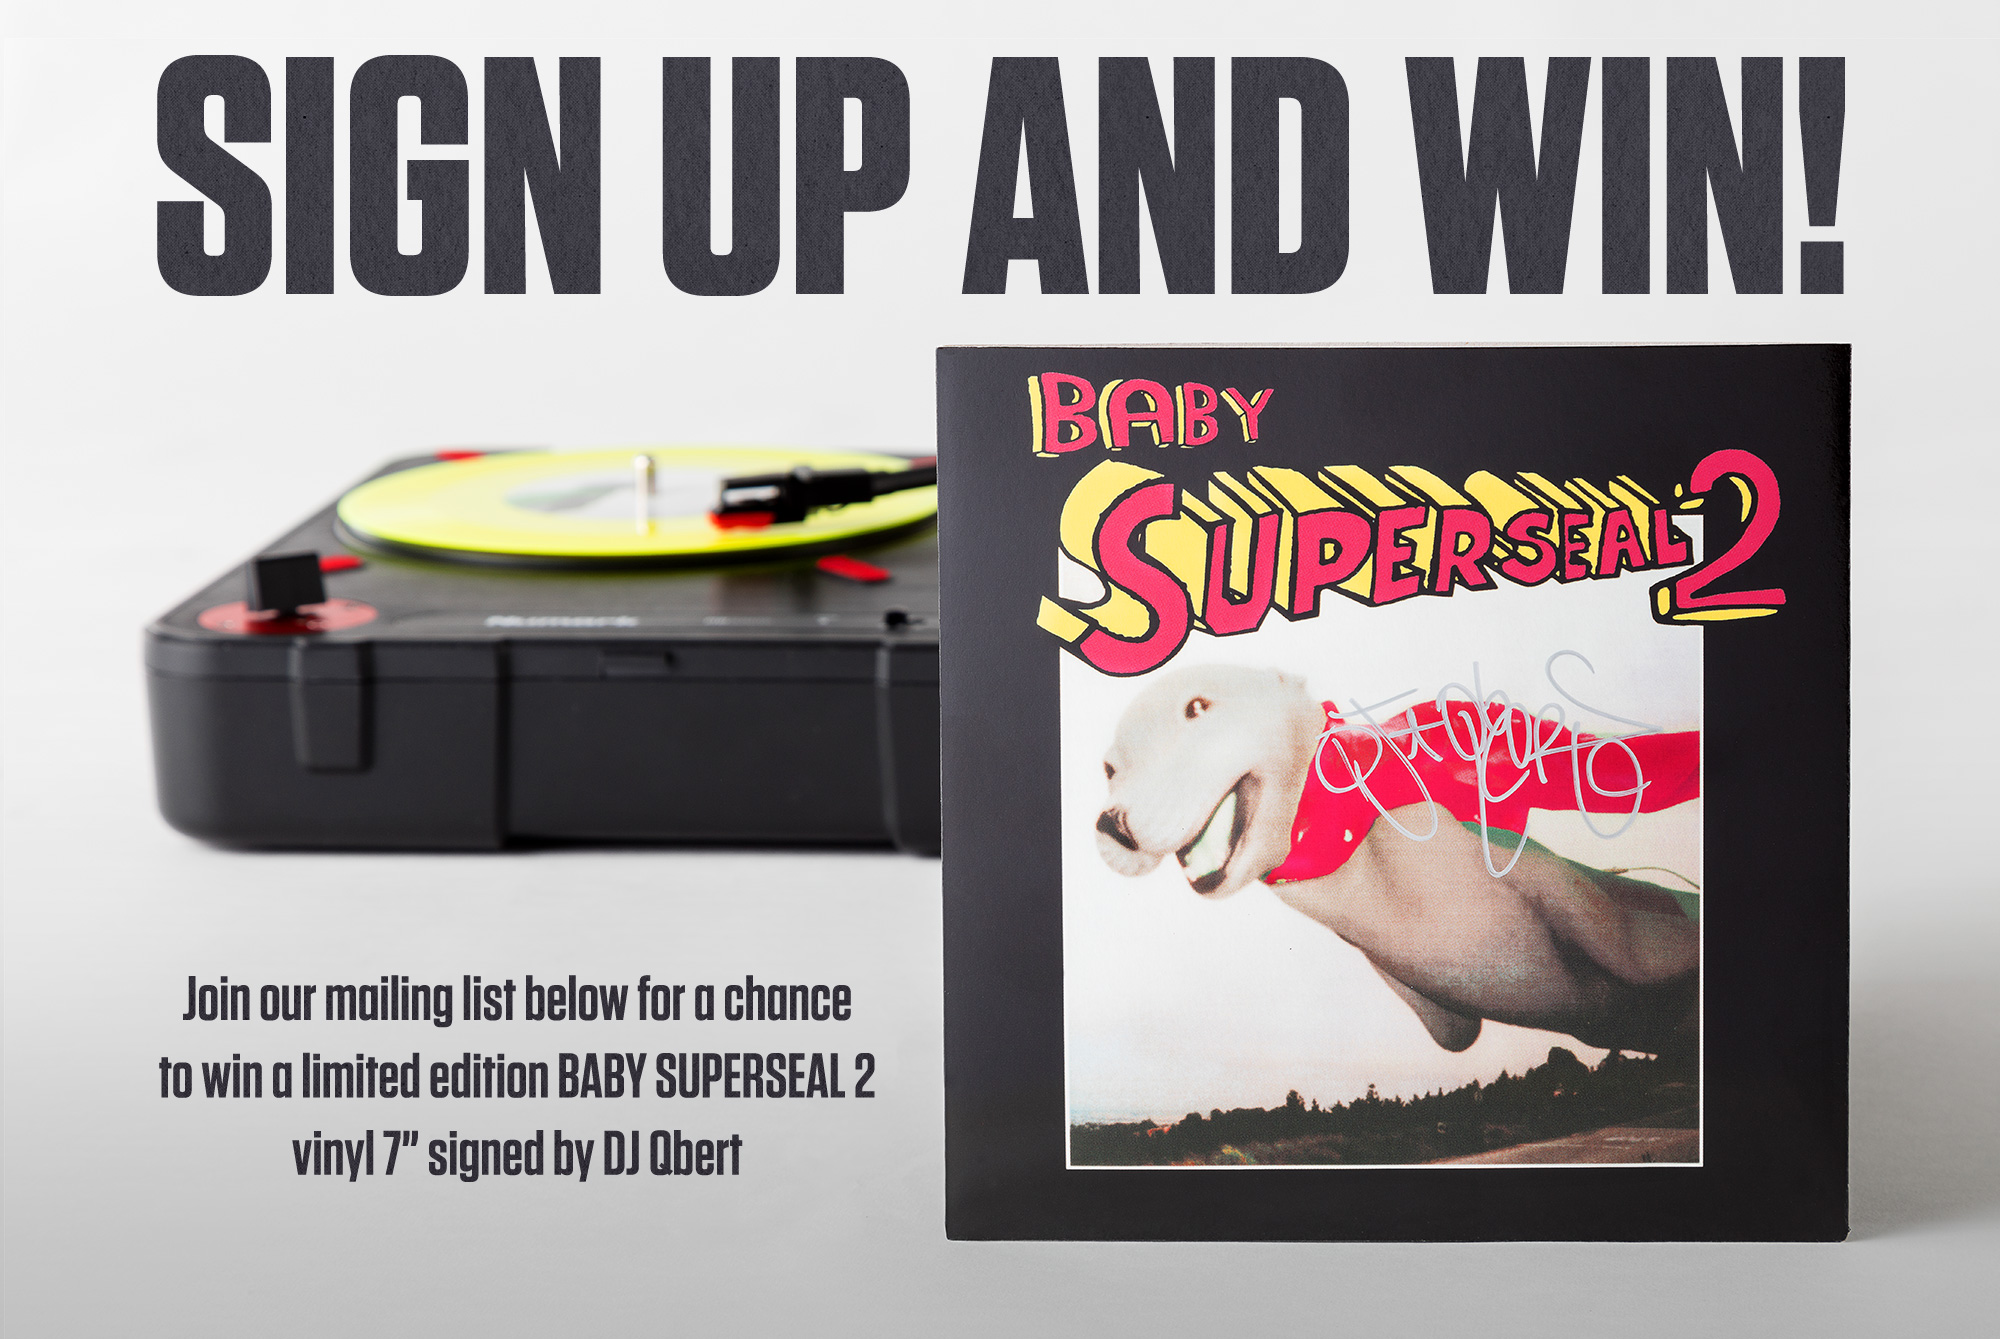 "Win a limited edition BABY SUPERSEAL 2 VINYL 7"" signed by Dj Qbert"